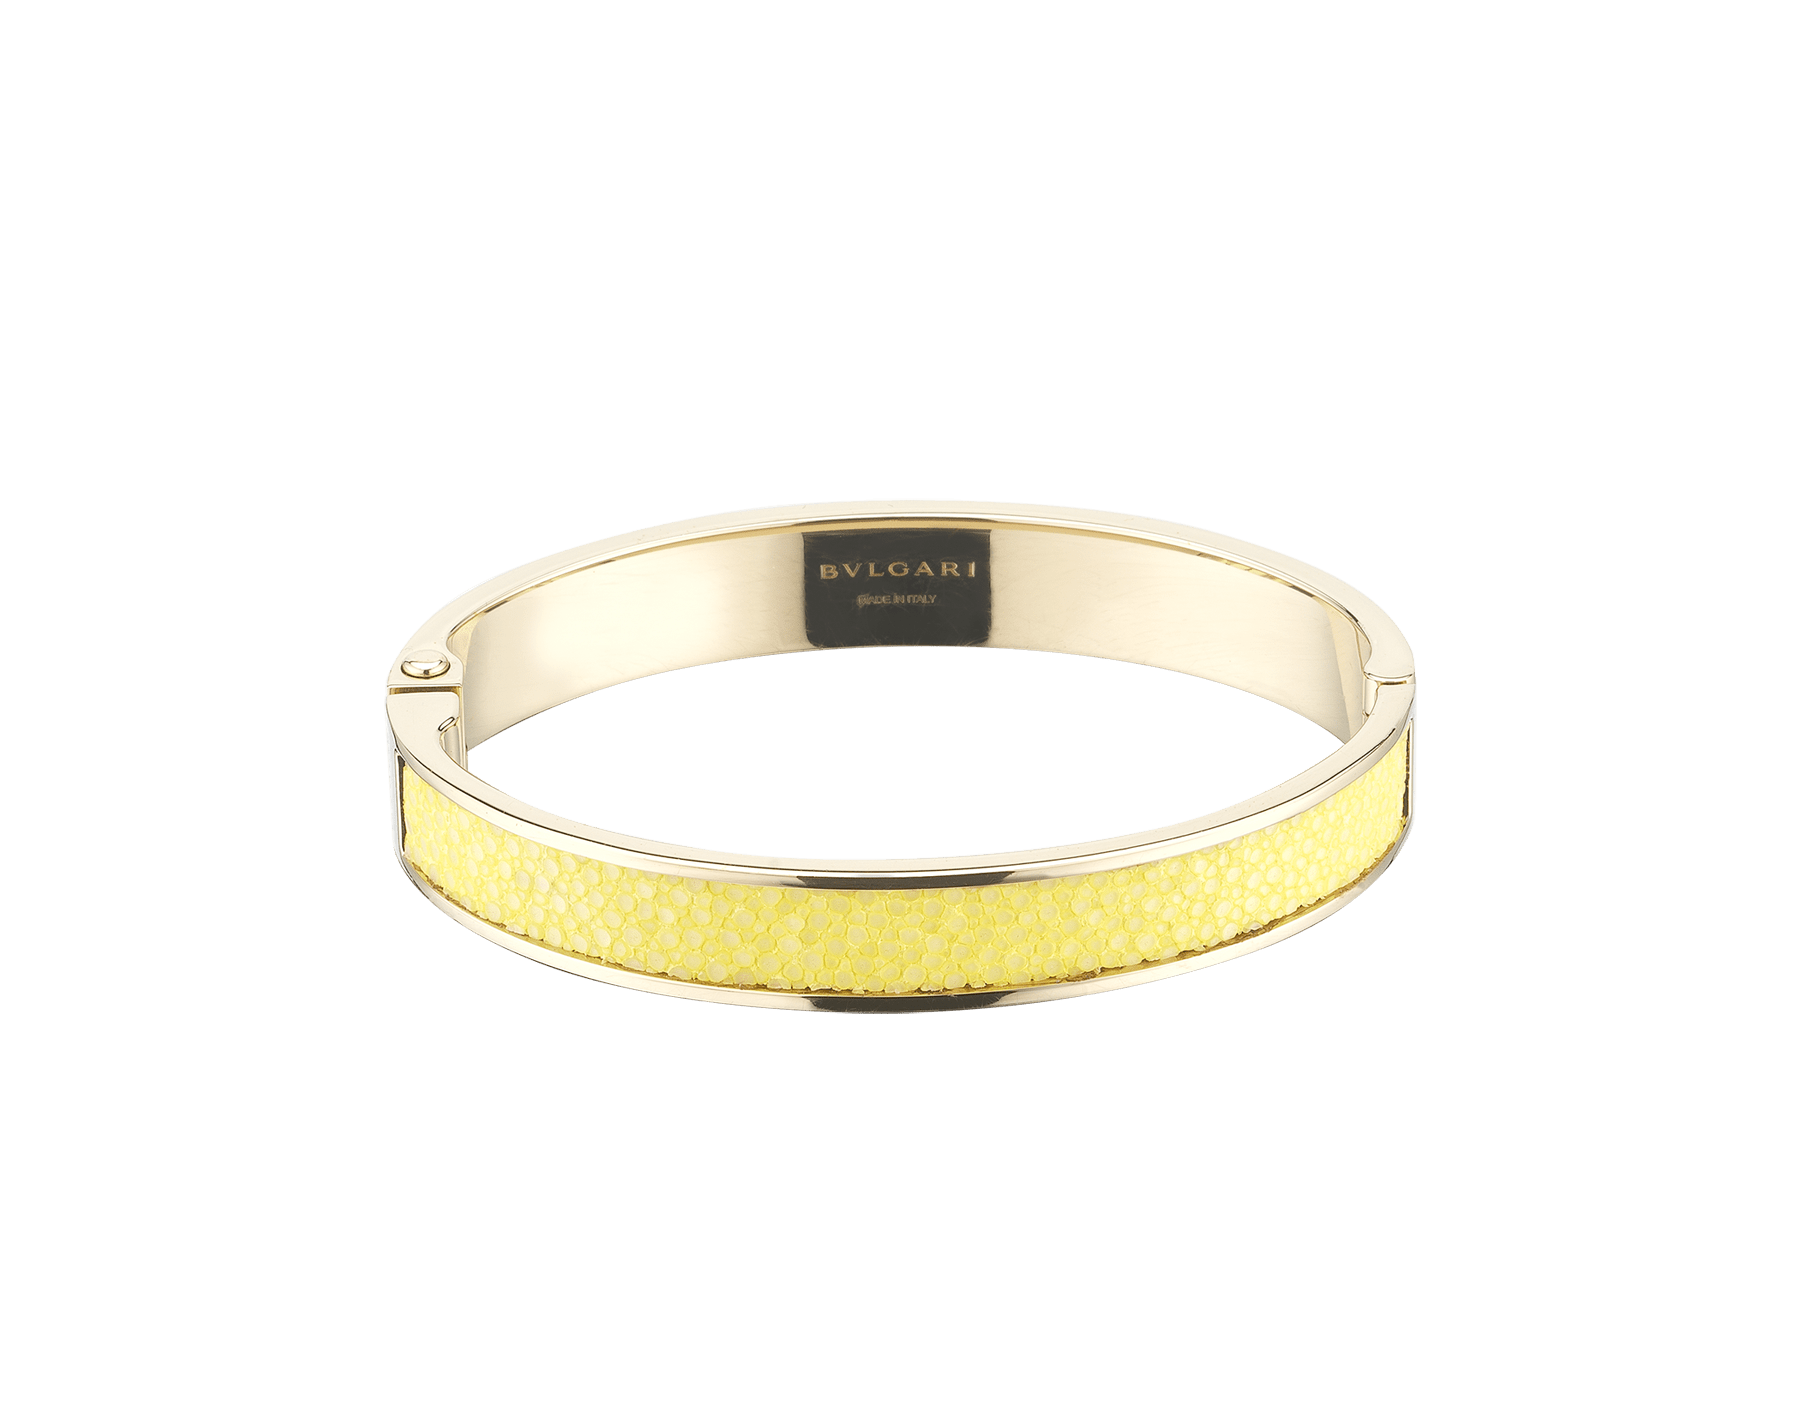 """BVLGARI BVLGARI"" new bangle bracelet in light gold with a Daisy Topaz yellow galuchat skin insert and a hinge featuring the BVLGARI logo. Engraved logo on the inside. HINGEBBBRACLT-MK-DT image 1"